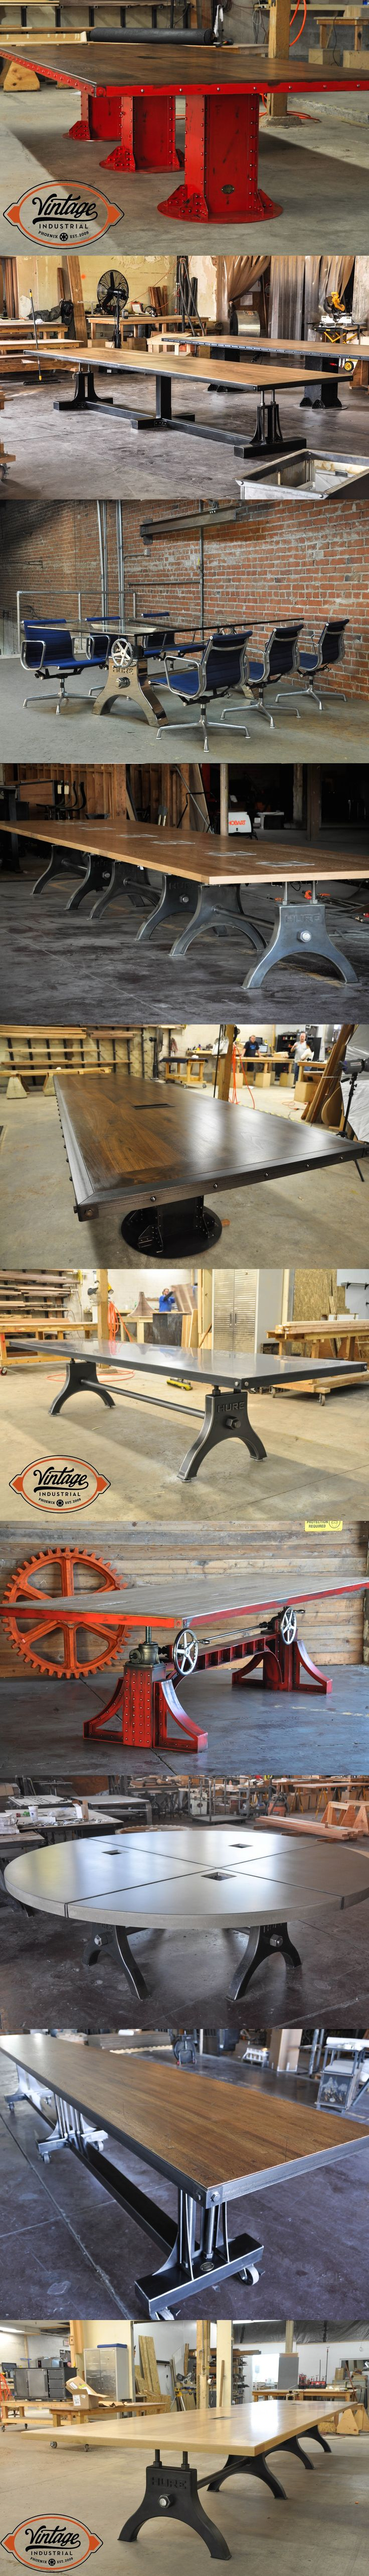 Vintage Industrial offers several conference table options that are all customizable with size, finish, color, dataport, and top